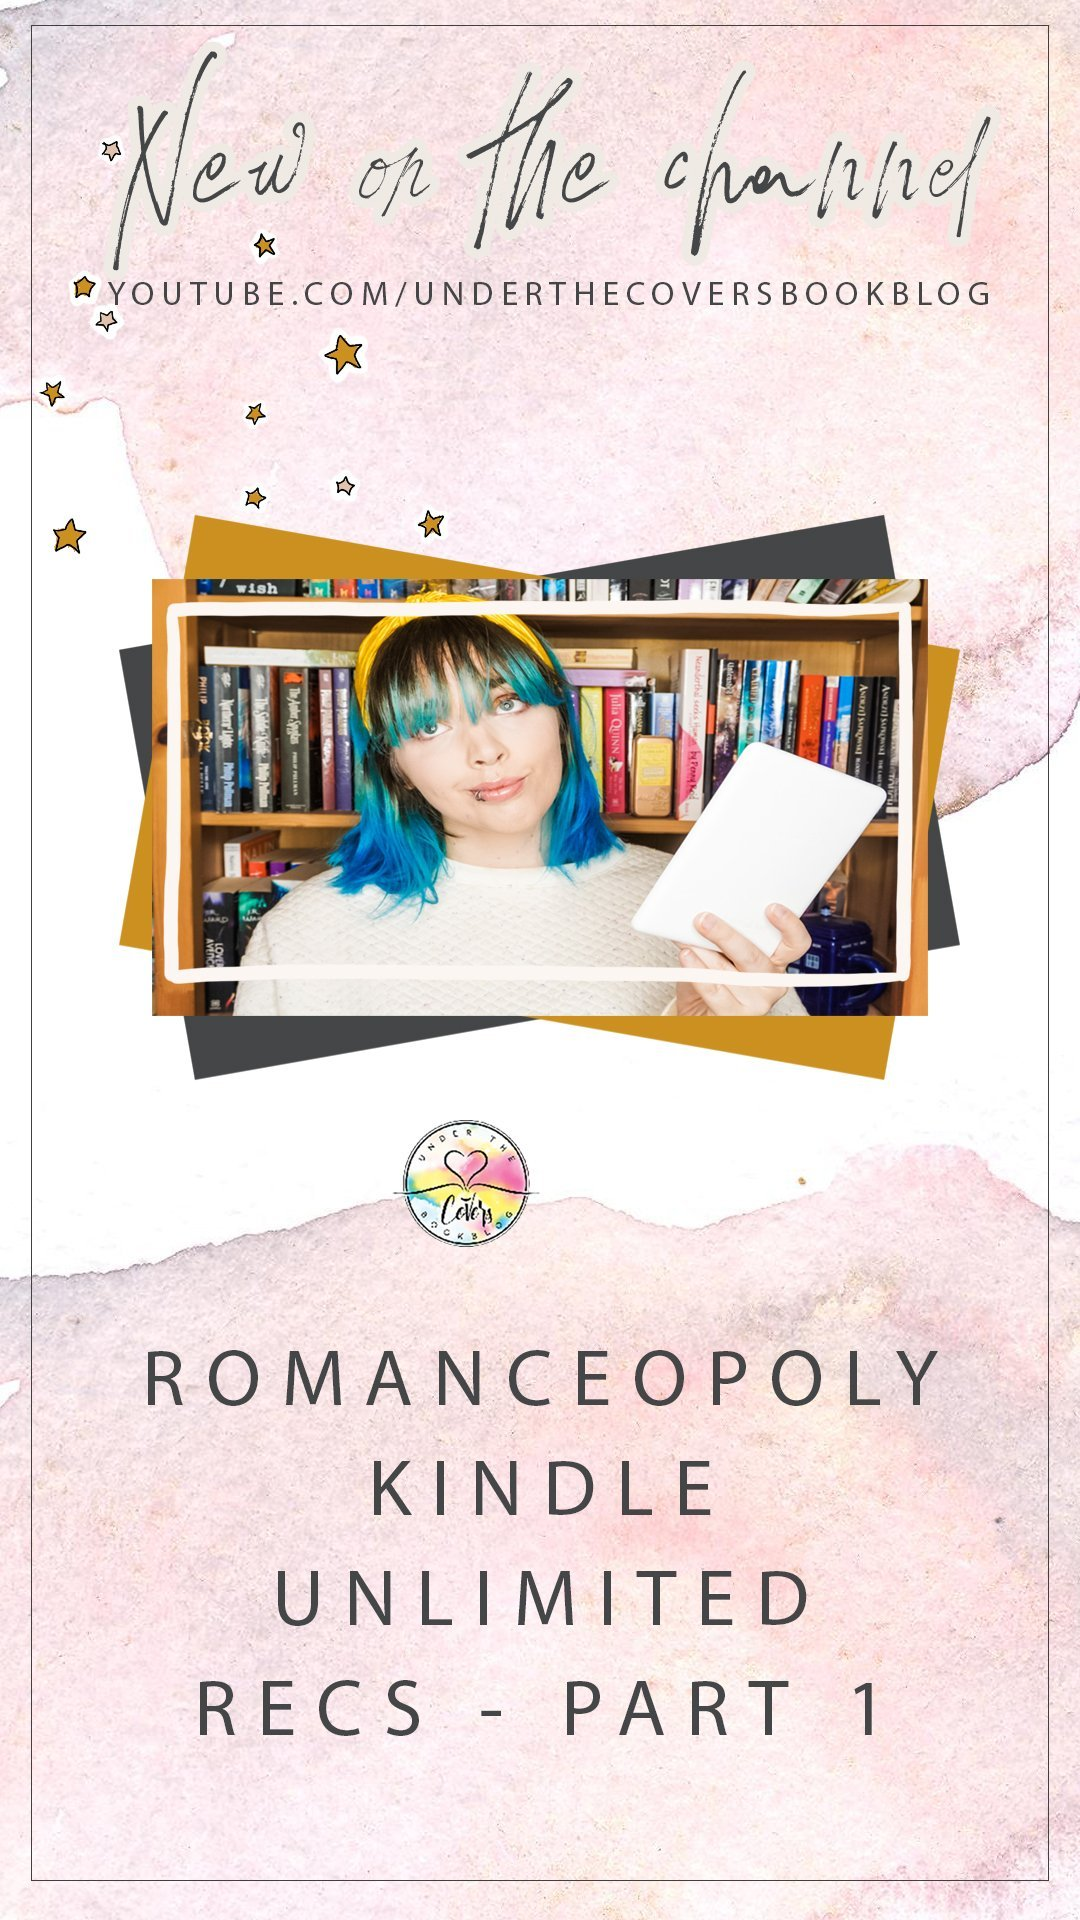 Romanceopoly on Kindle Unlimited   Part 1